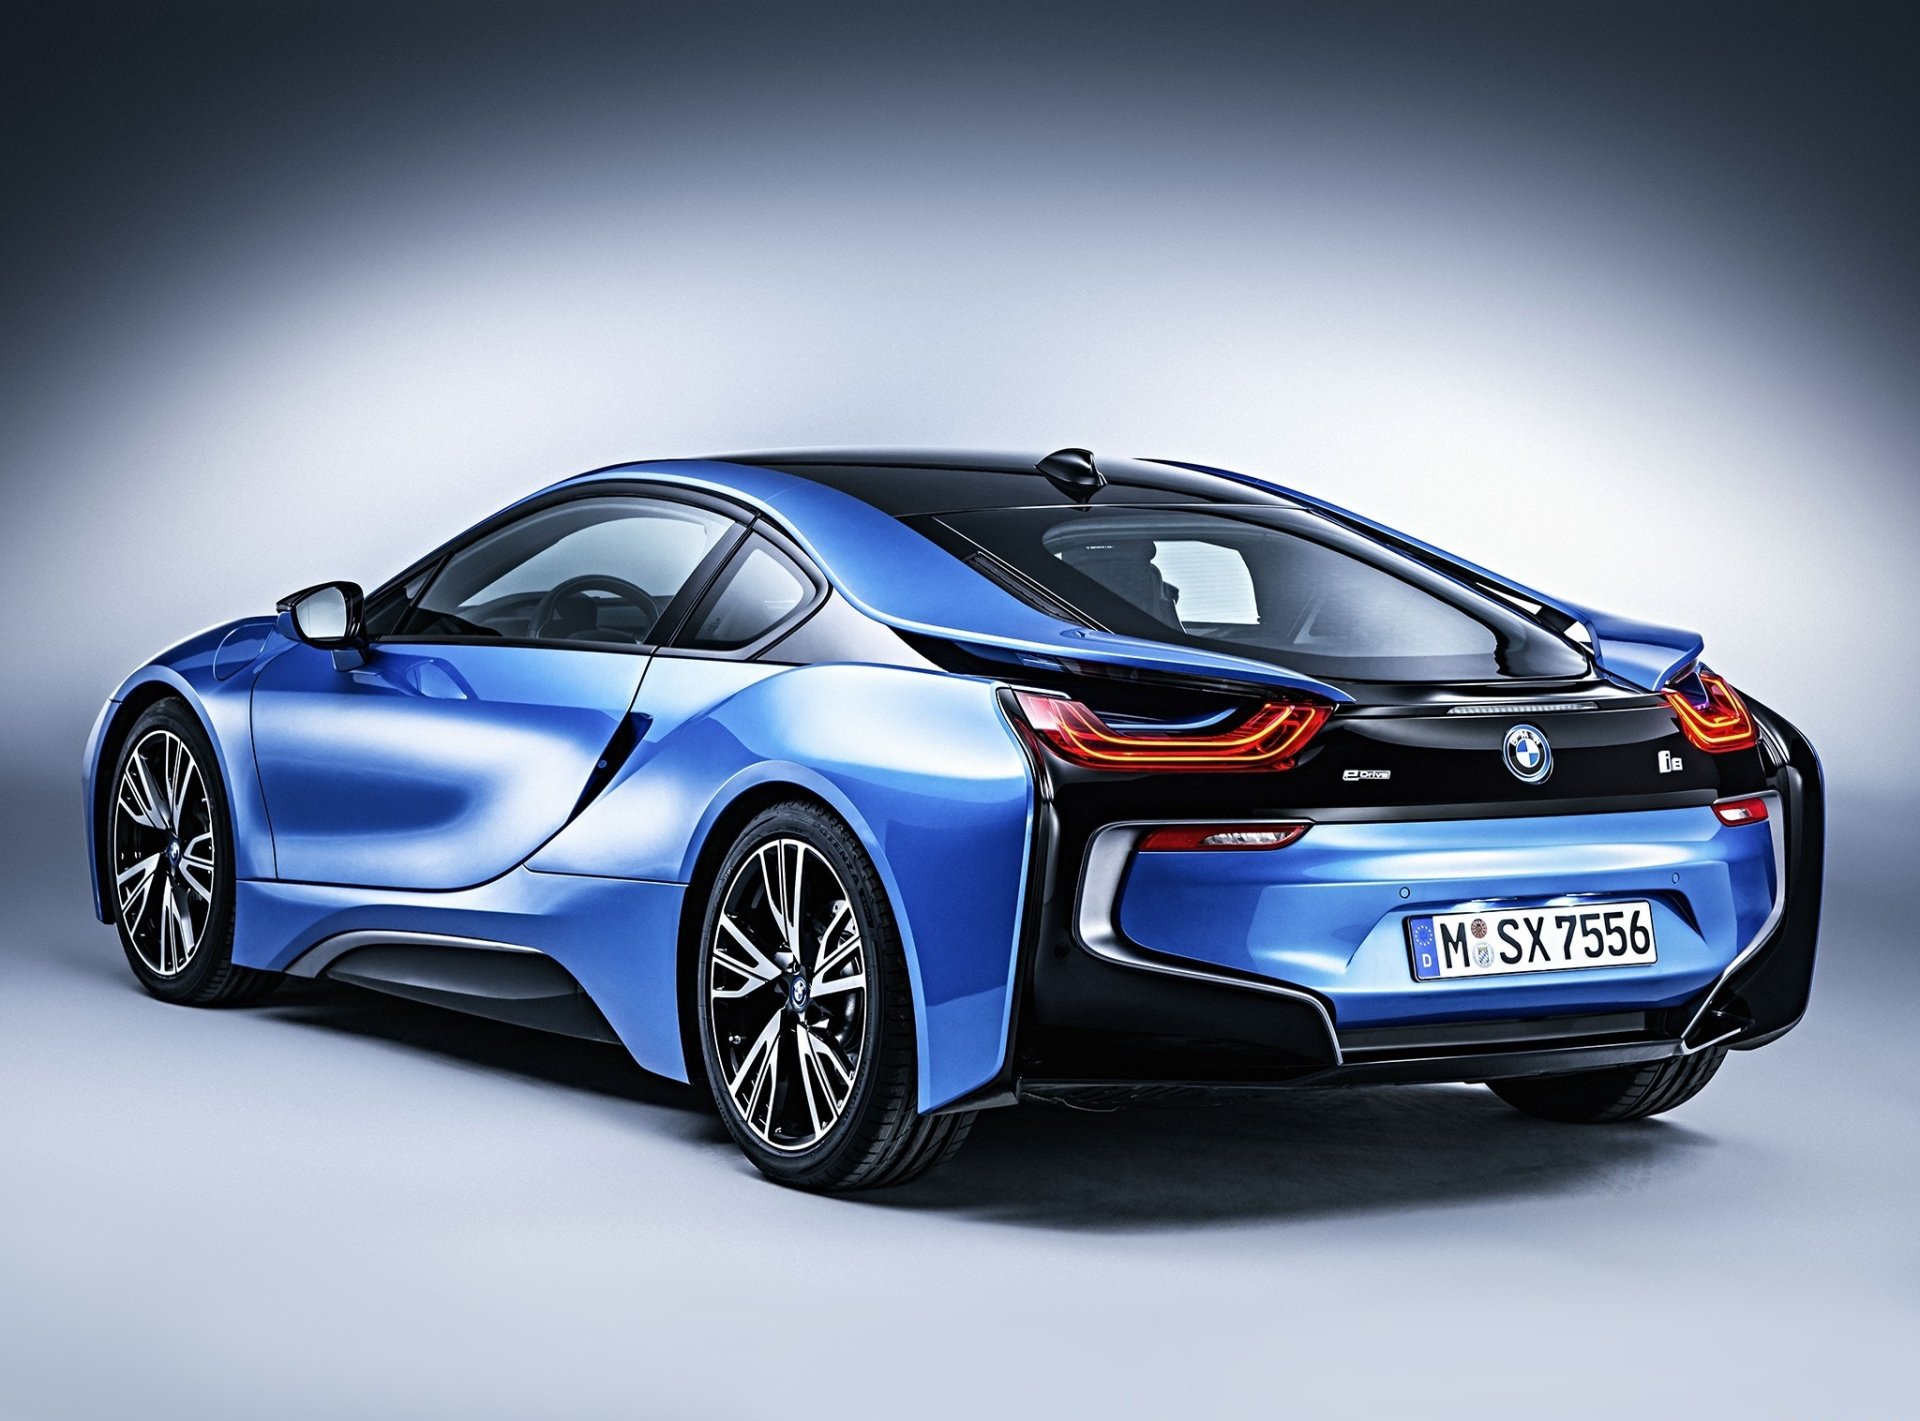 Vehicles - BMW i8  BMW Blue Wallpaper